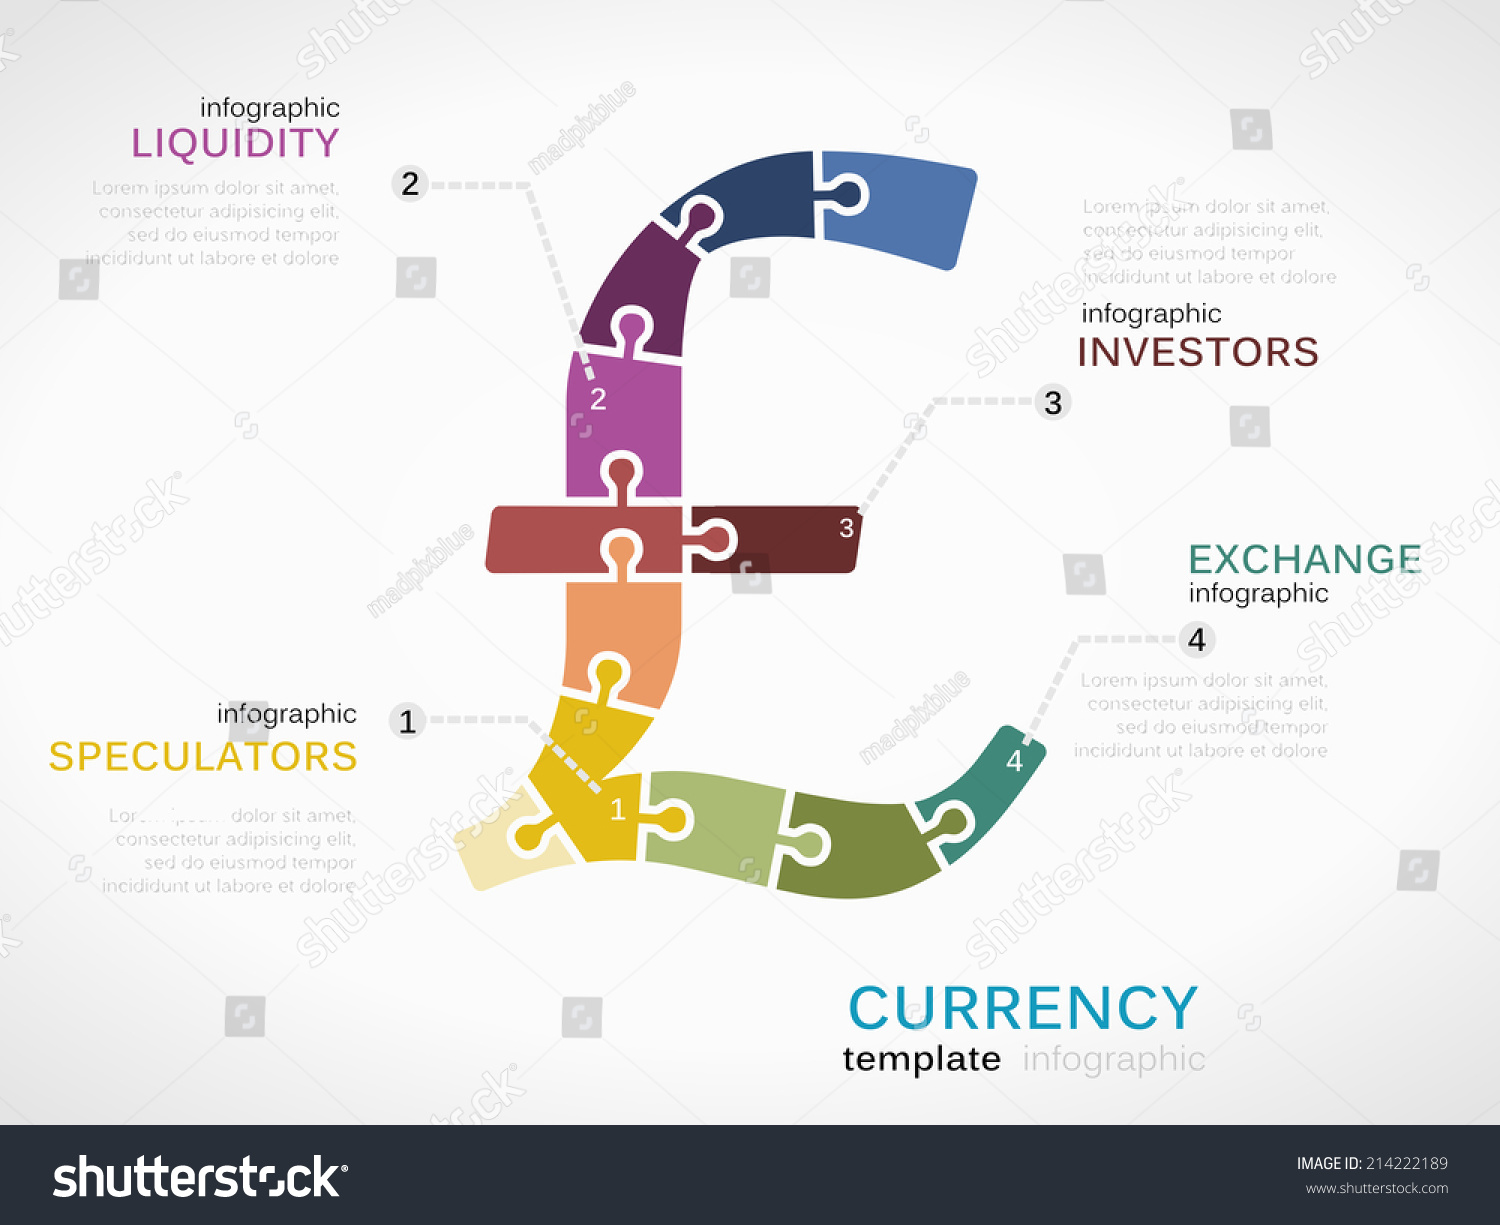 Infographic template pound sterling currency symbol stock vector infographic template with pound sterling currency symbol made out of puzzle pieces buycottarizona Choice Image